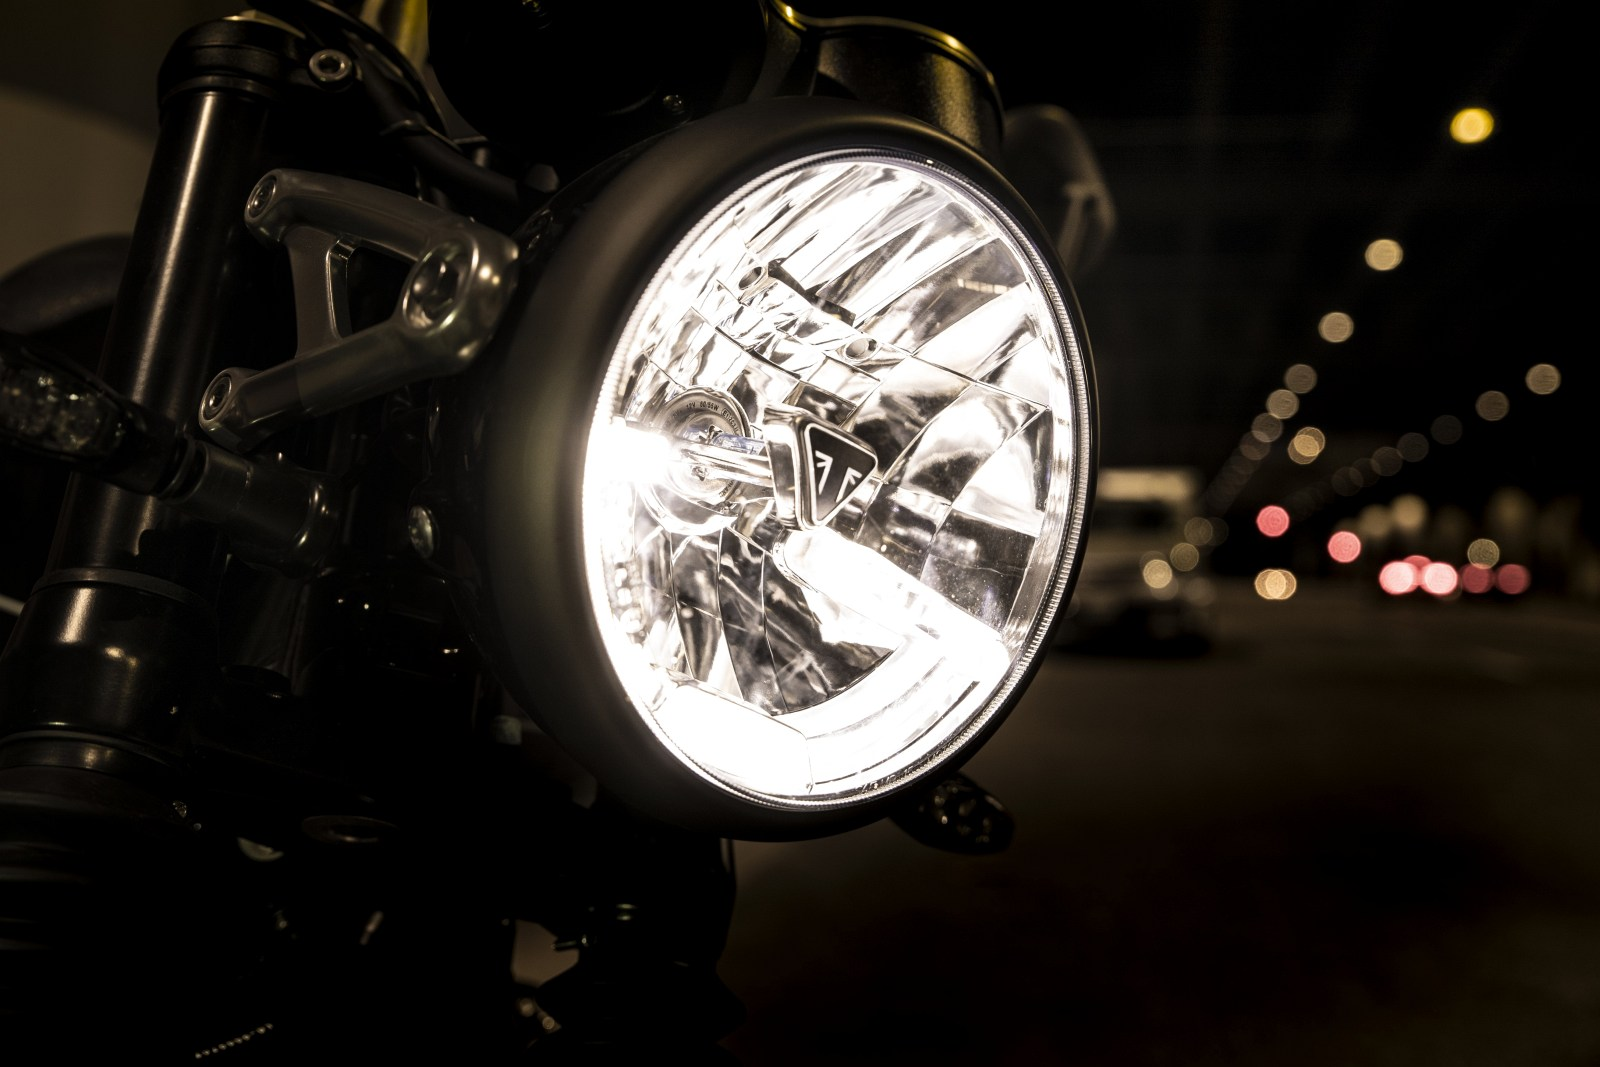 2019 Speed Twin FRONT HEADLIGHT